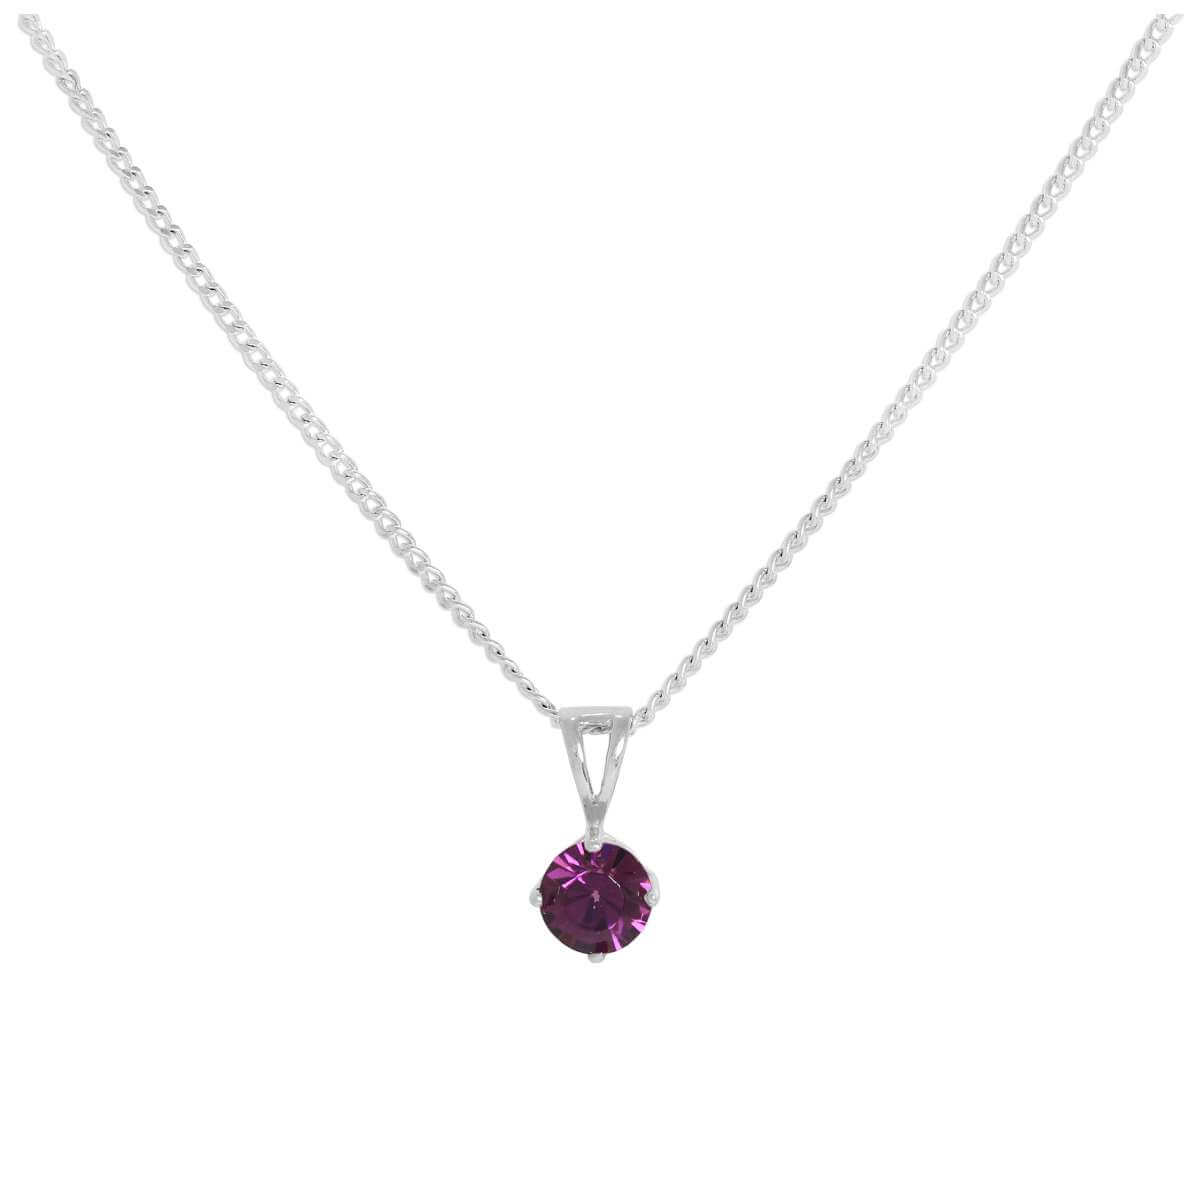 Sterling Silver & Amethyst Crystal Made with Swarovski Elements February Birthstone Pendant on Chain 16 - 24 Inches